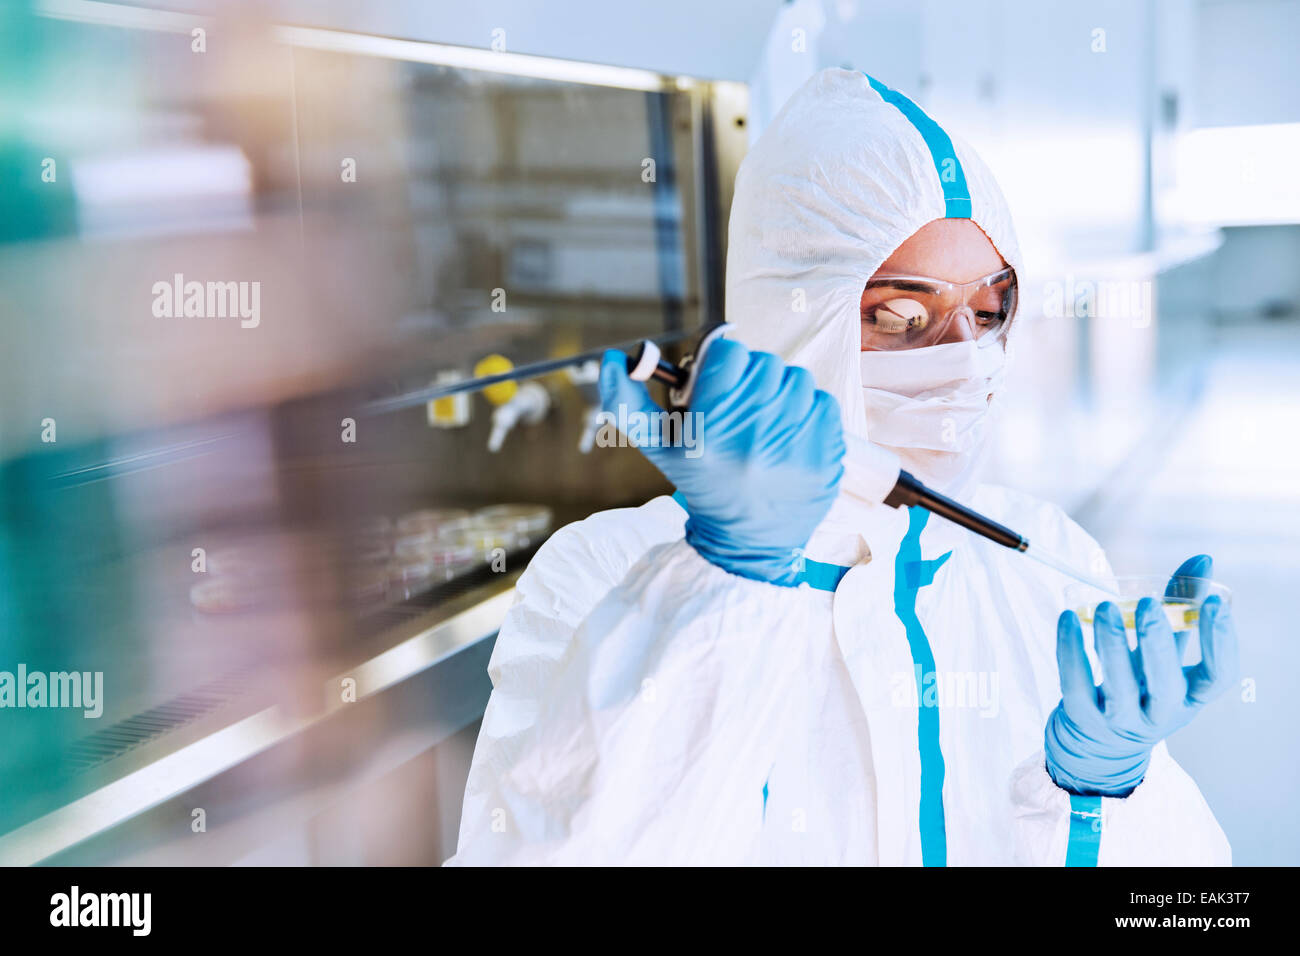 Scientist in clean suit pipetting sample into Petri dish in laboratory - Stock Image